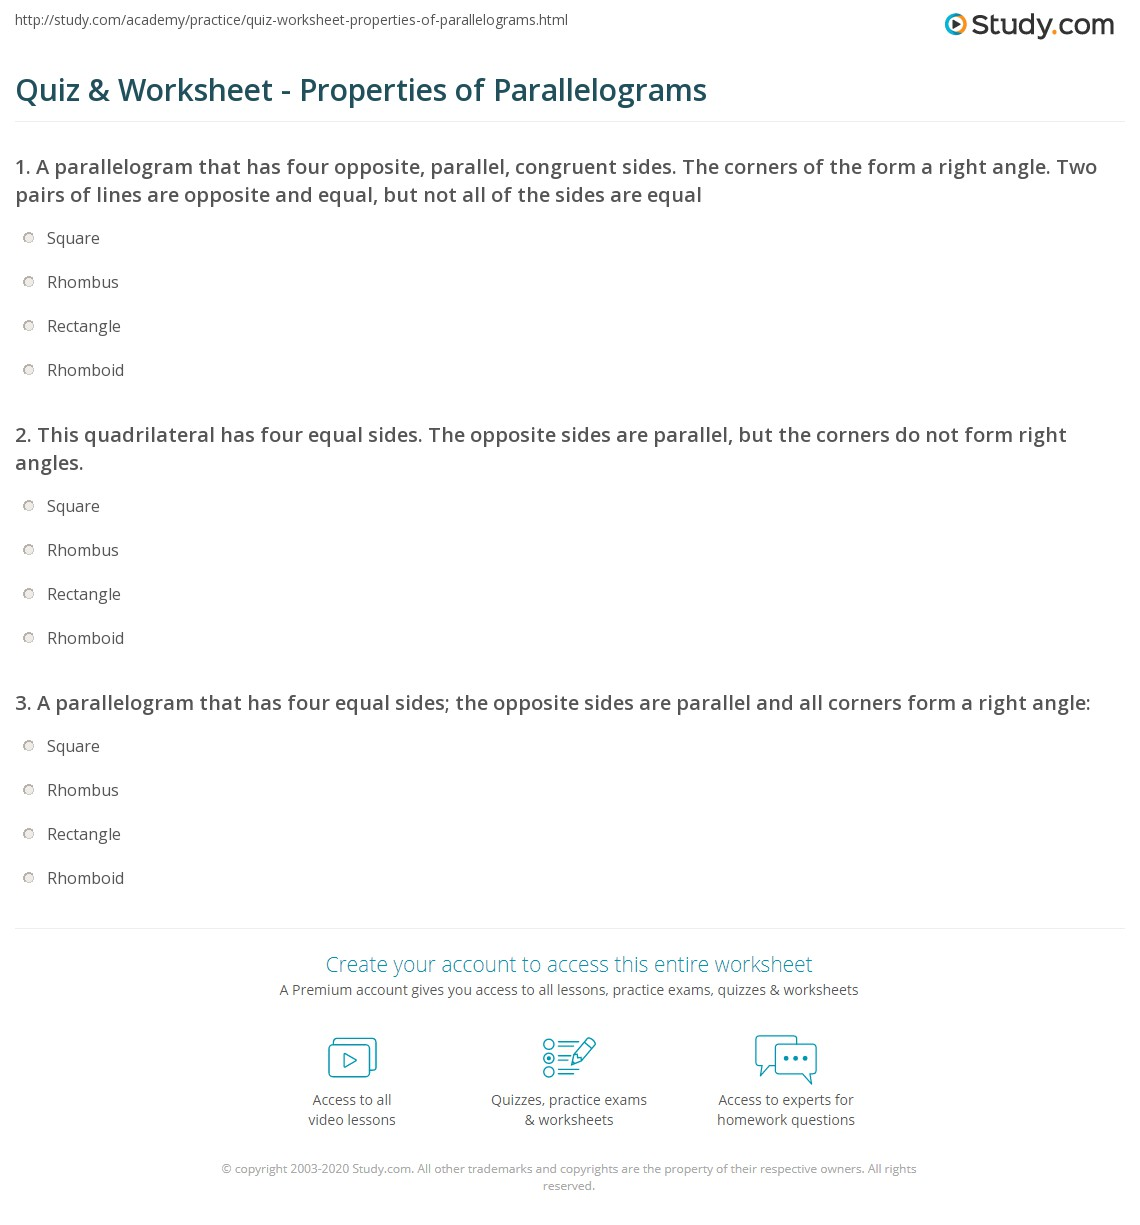 Quiz & Worksheet - Properties of Parallelograms | Study.com